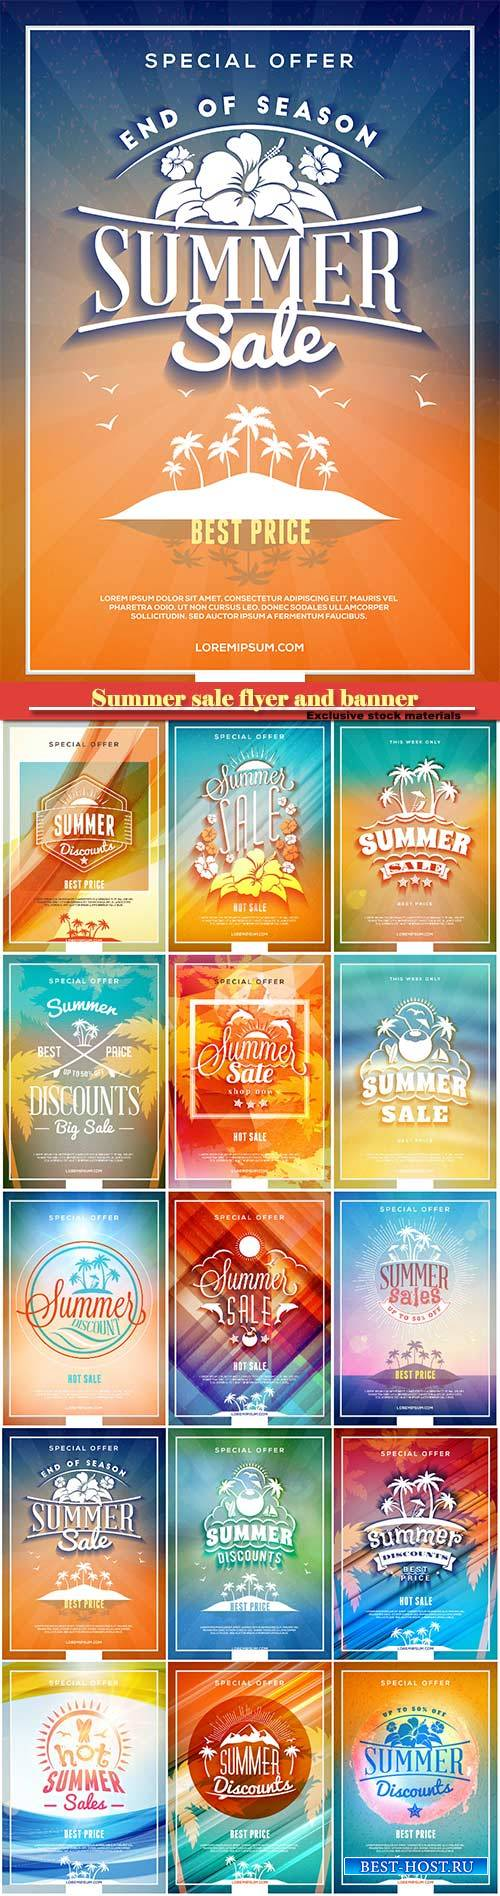 Summer sale flyer or banner vector design template